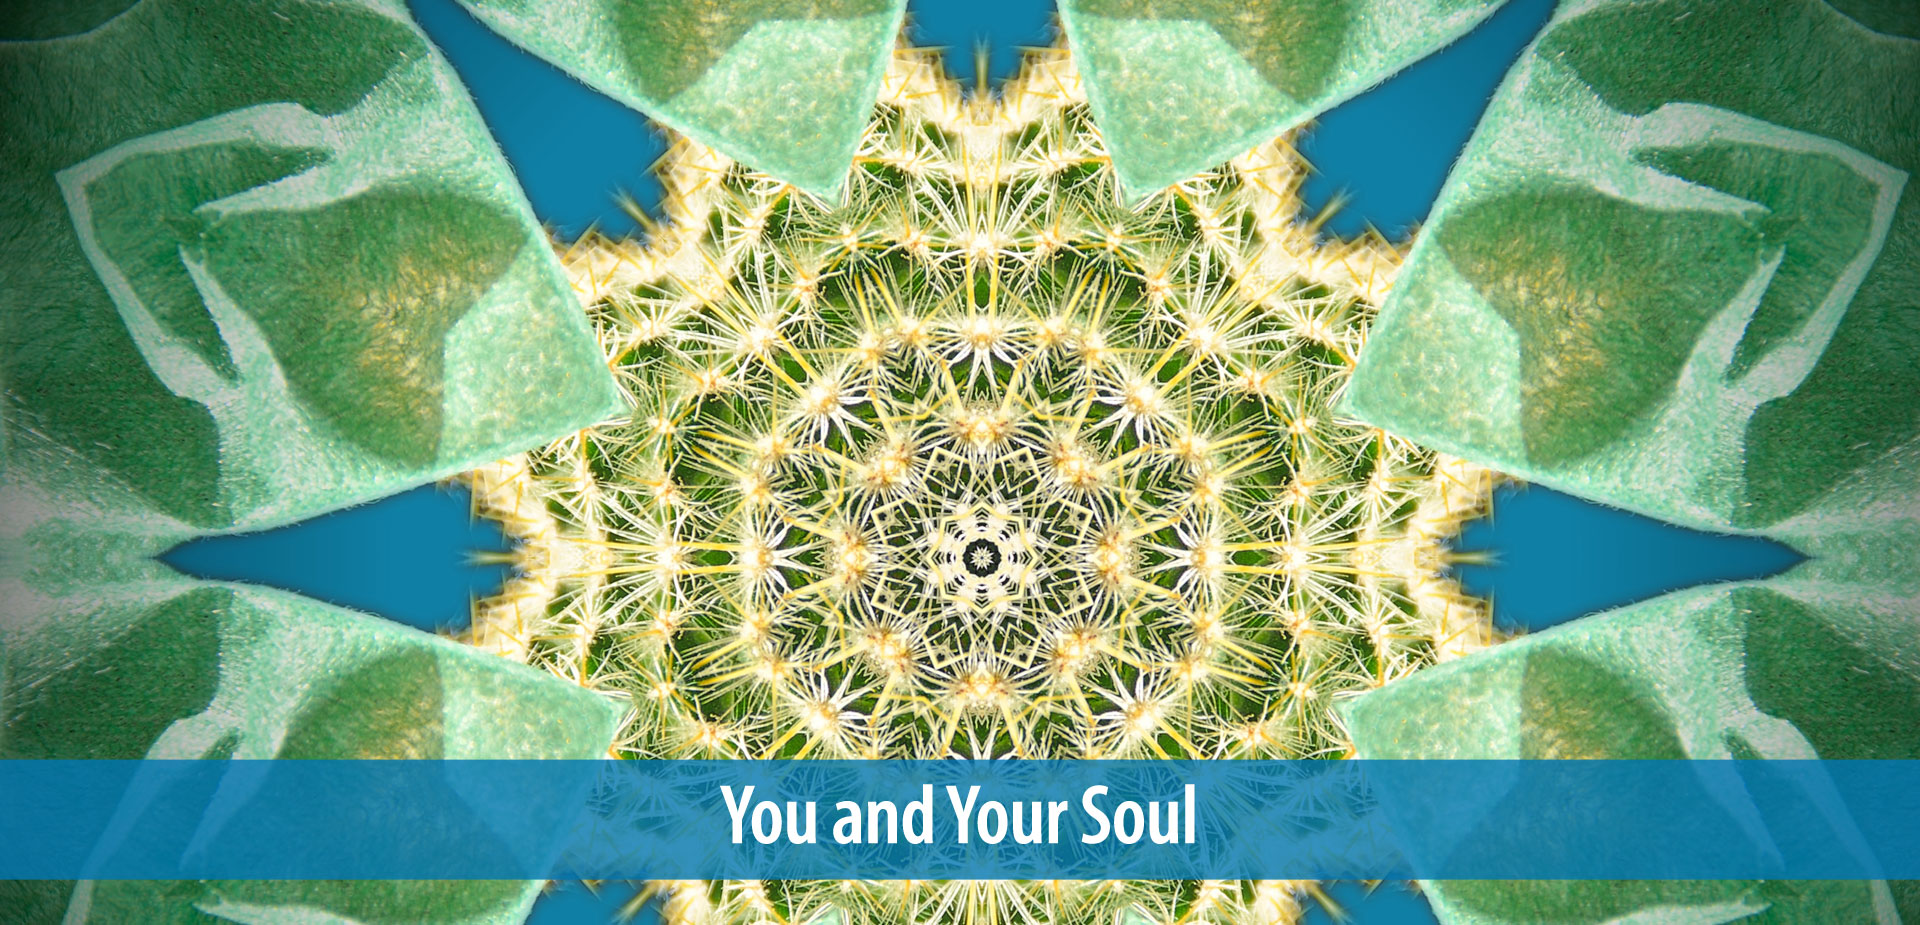 You and Your Soul